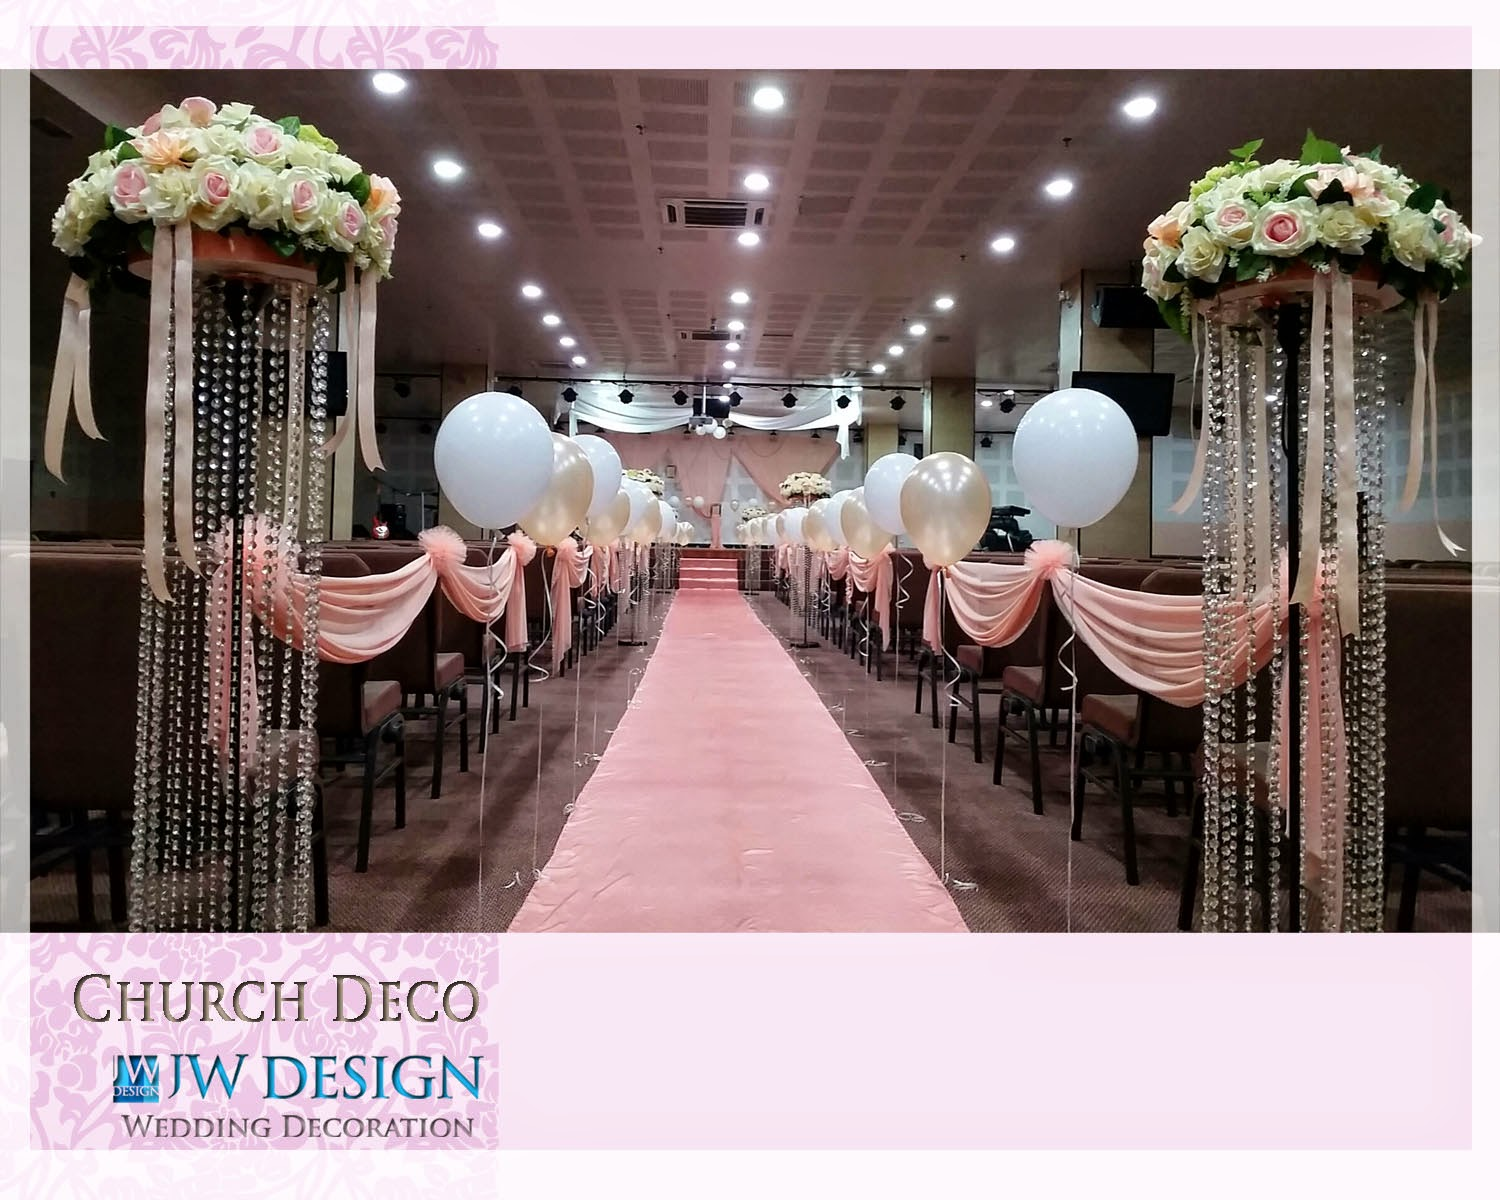 Jw design wedding decoration church wedding decoration junglespirit Choice Image